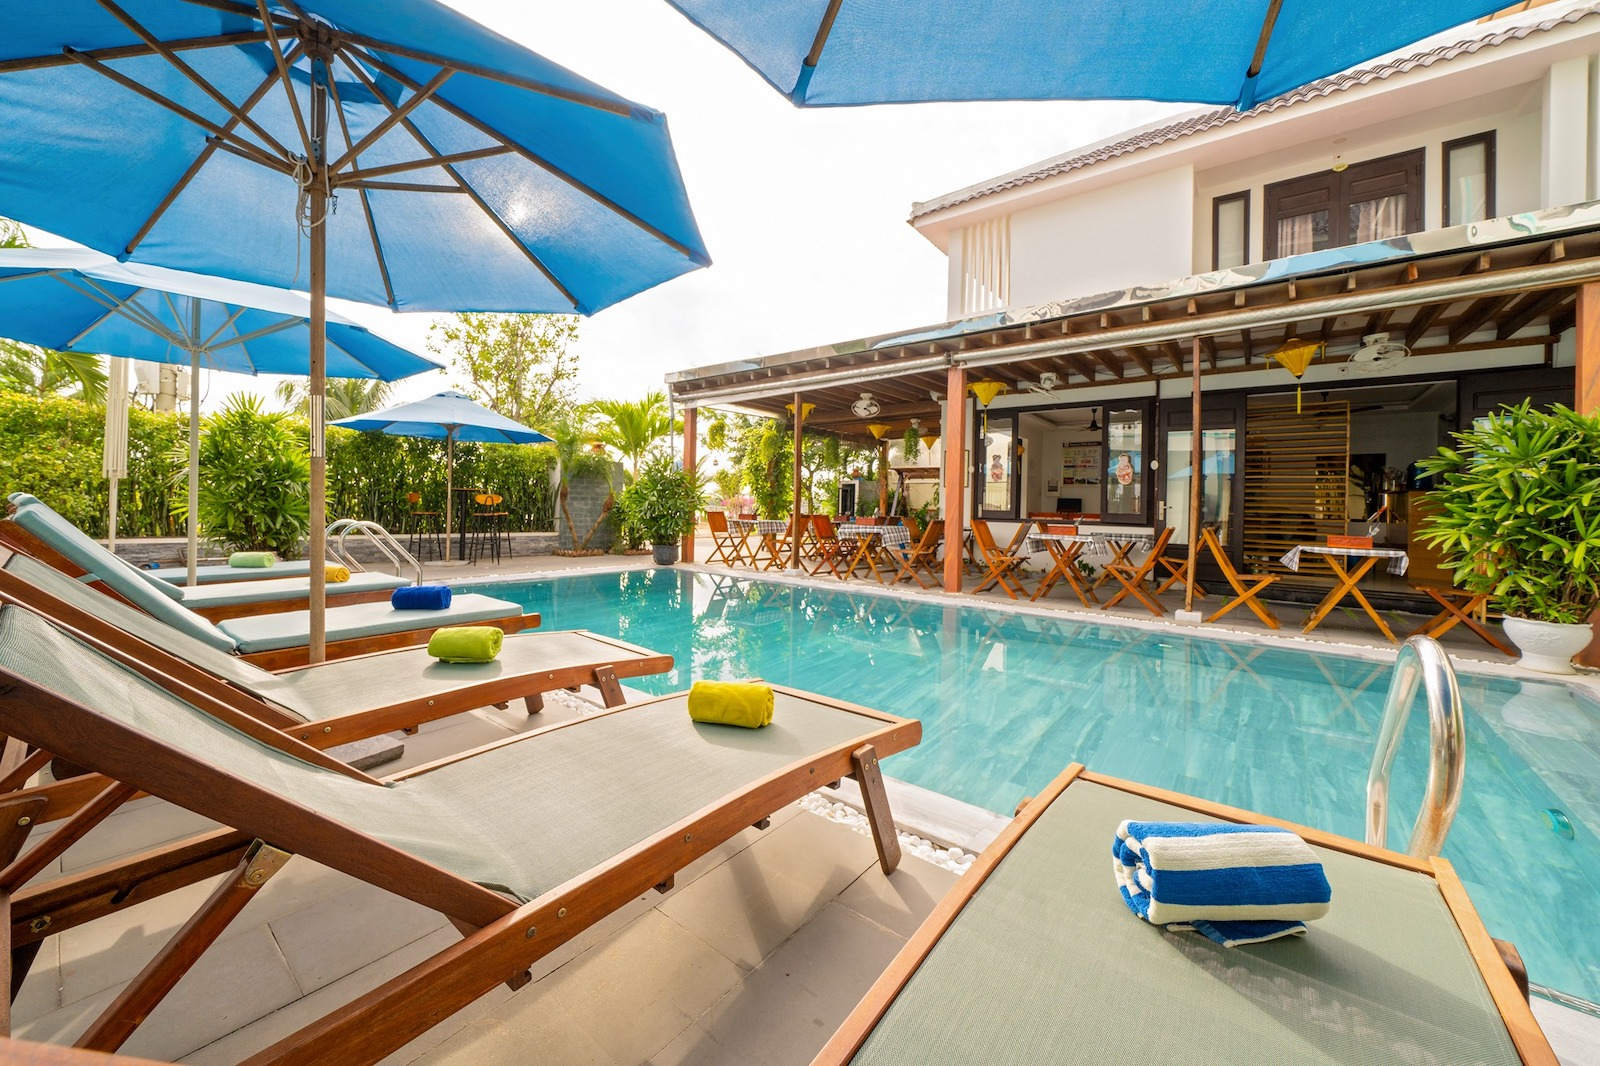 Image of the pool at the Hoi An Estuary Villa in Vietnam